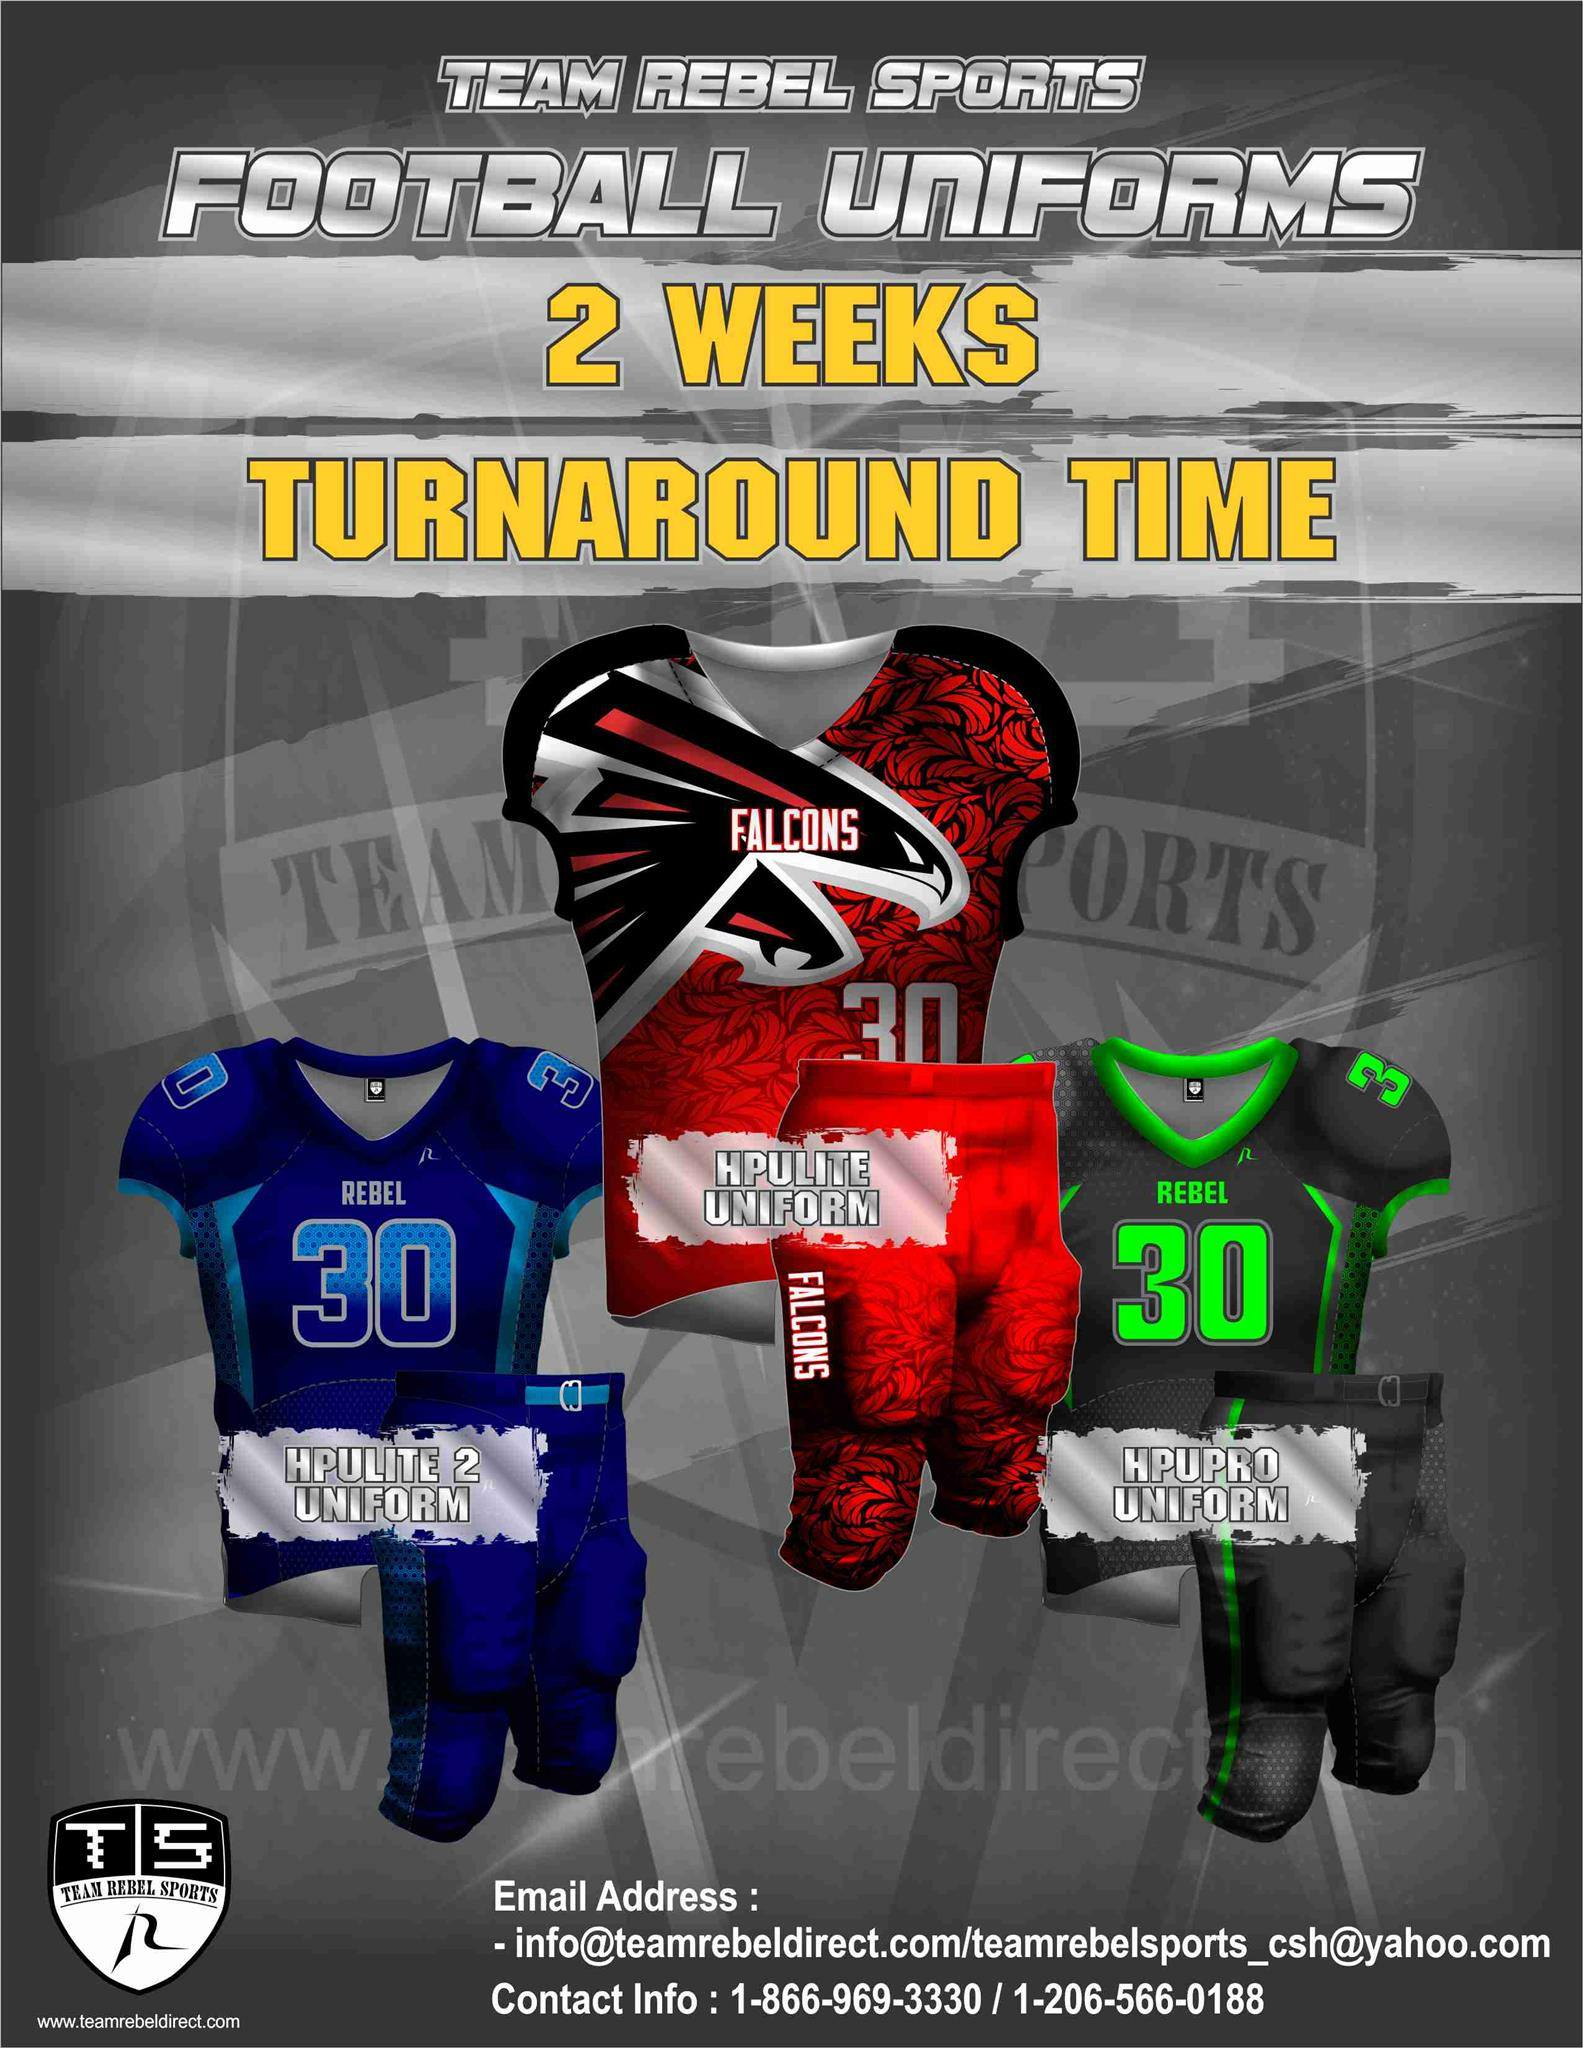 Two weeks turnaround time